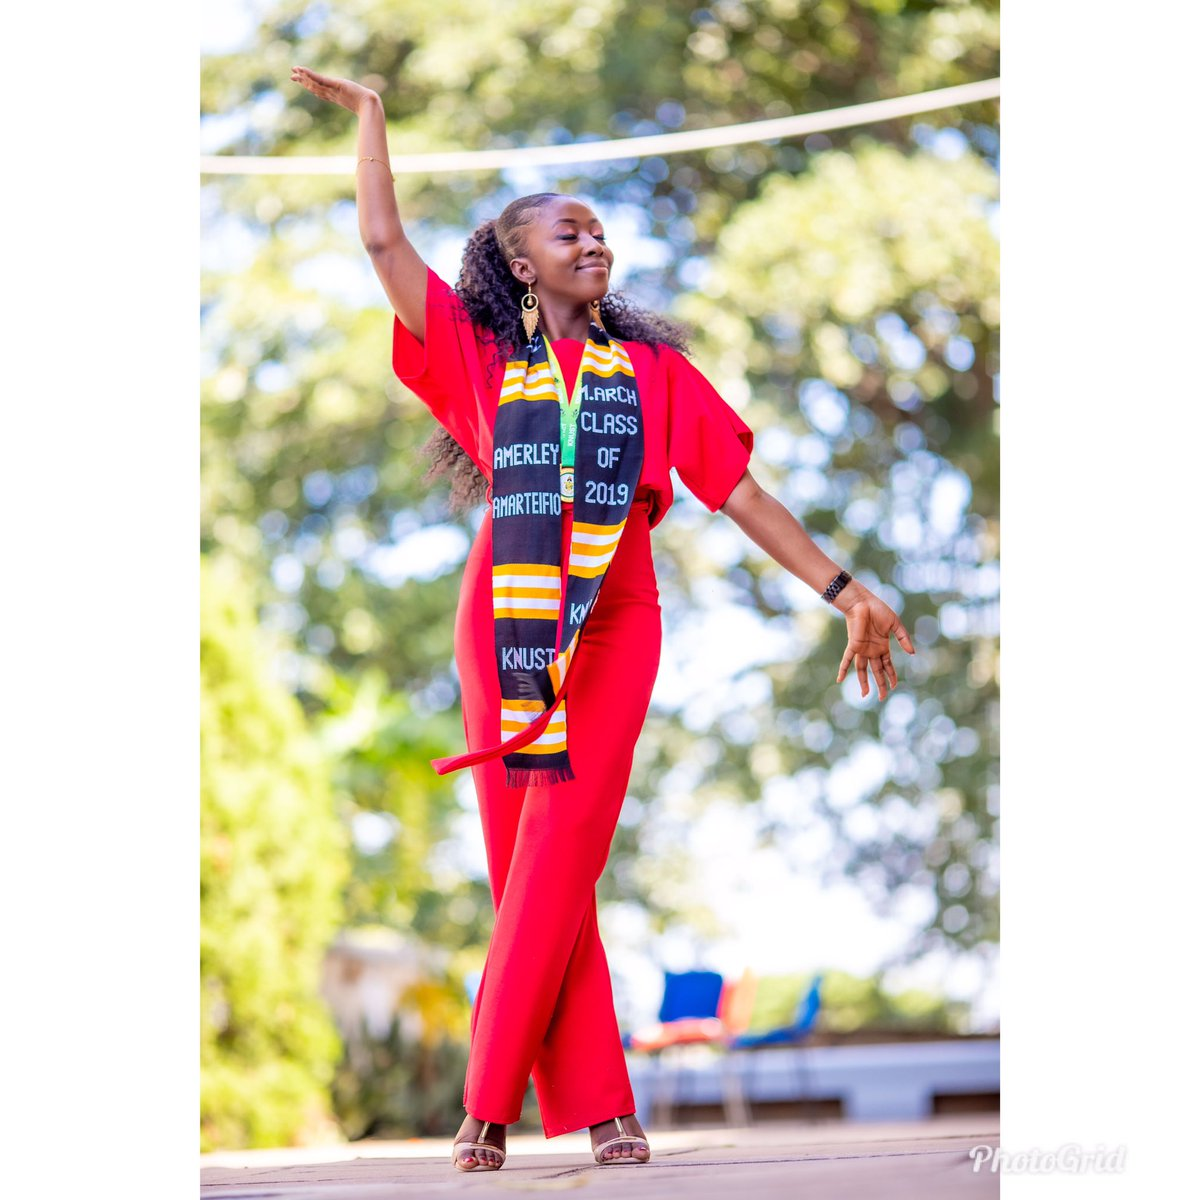 God feat. Hardwork Master of architecture bagged by His grace  #gradszn <br>http://pic.twitter.com/fK8MnwBwqq